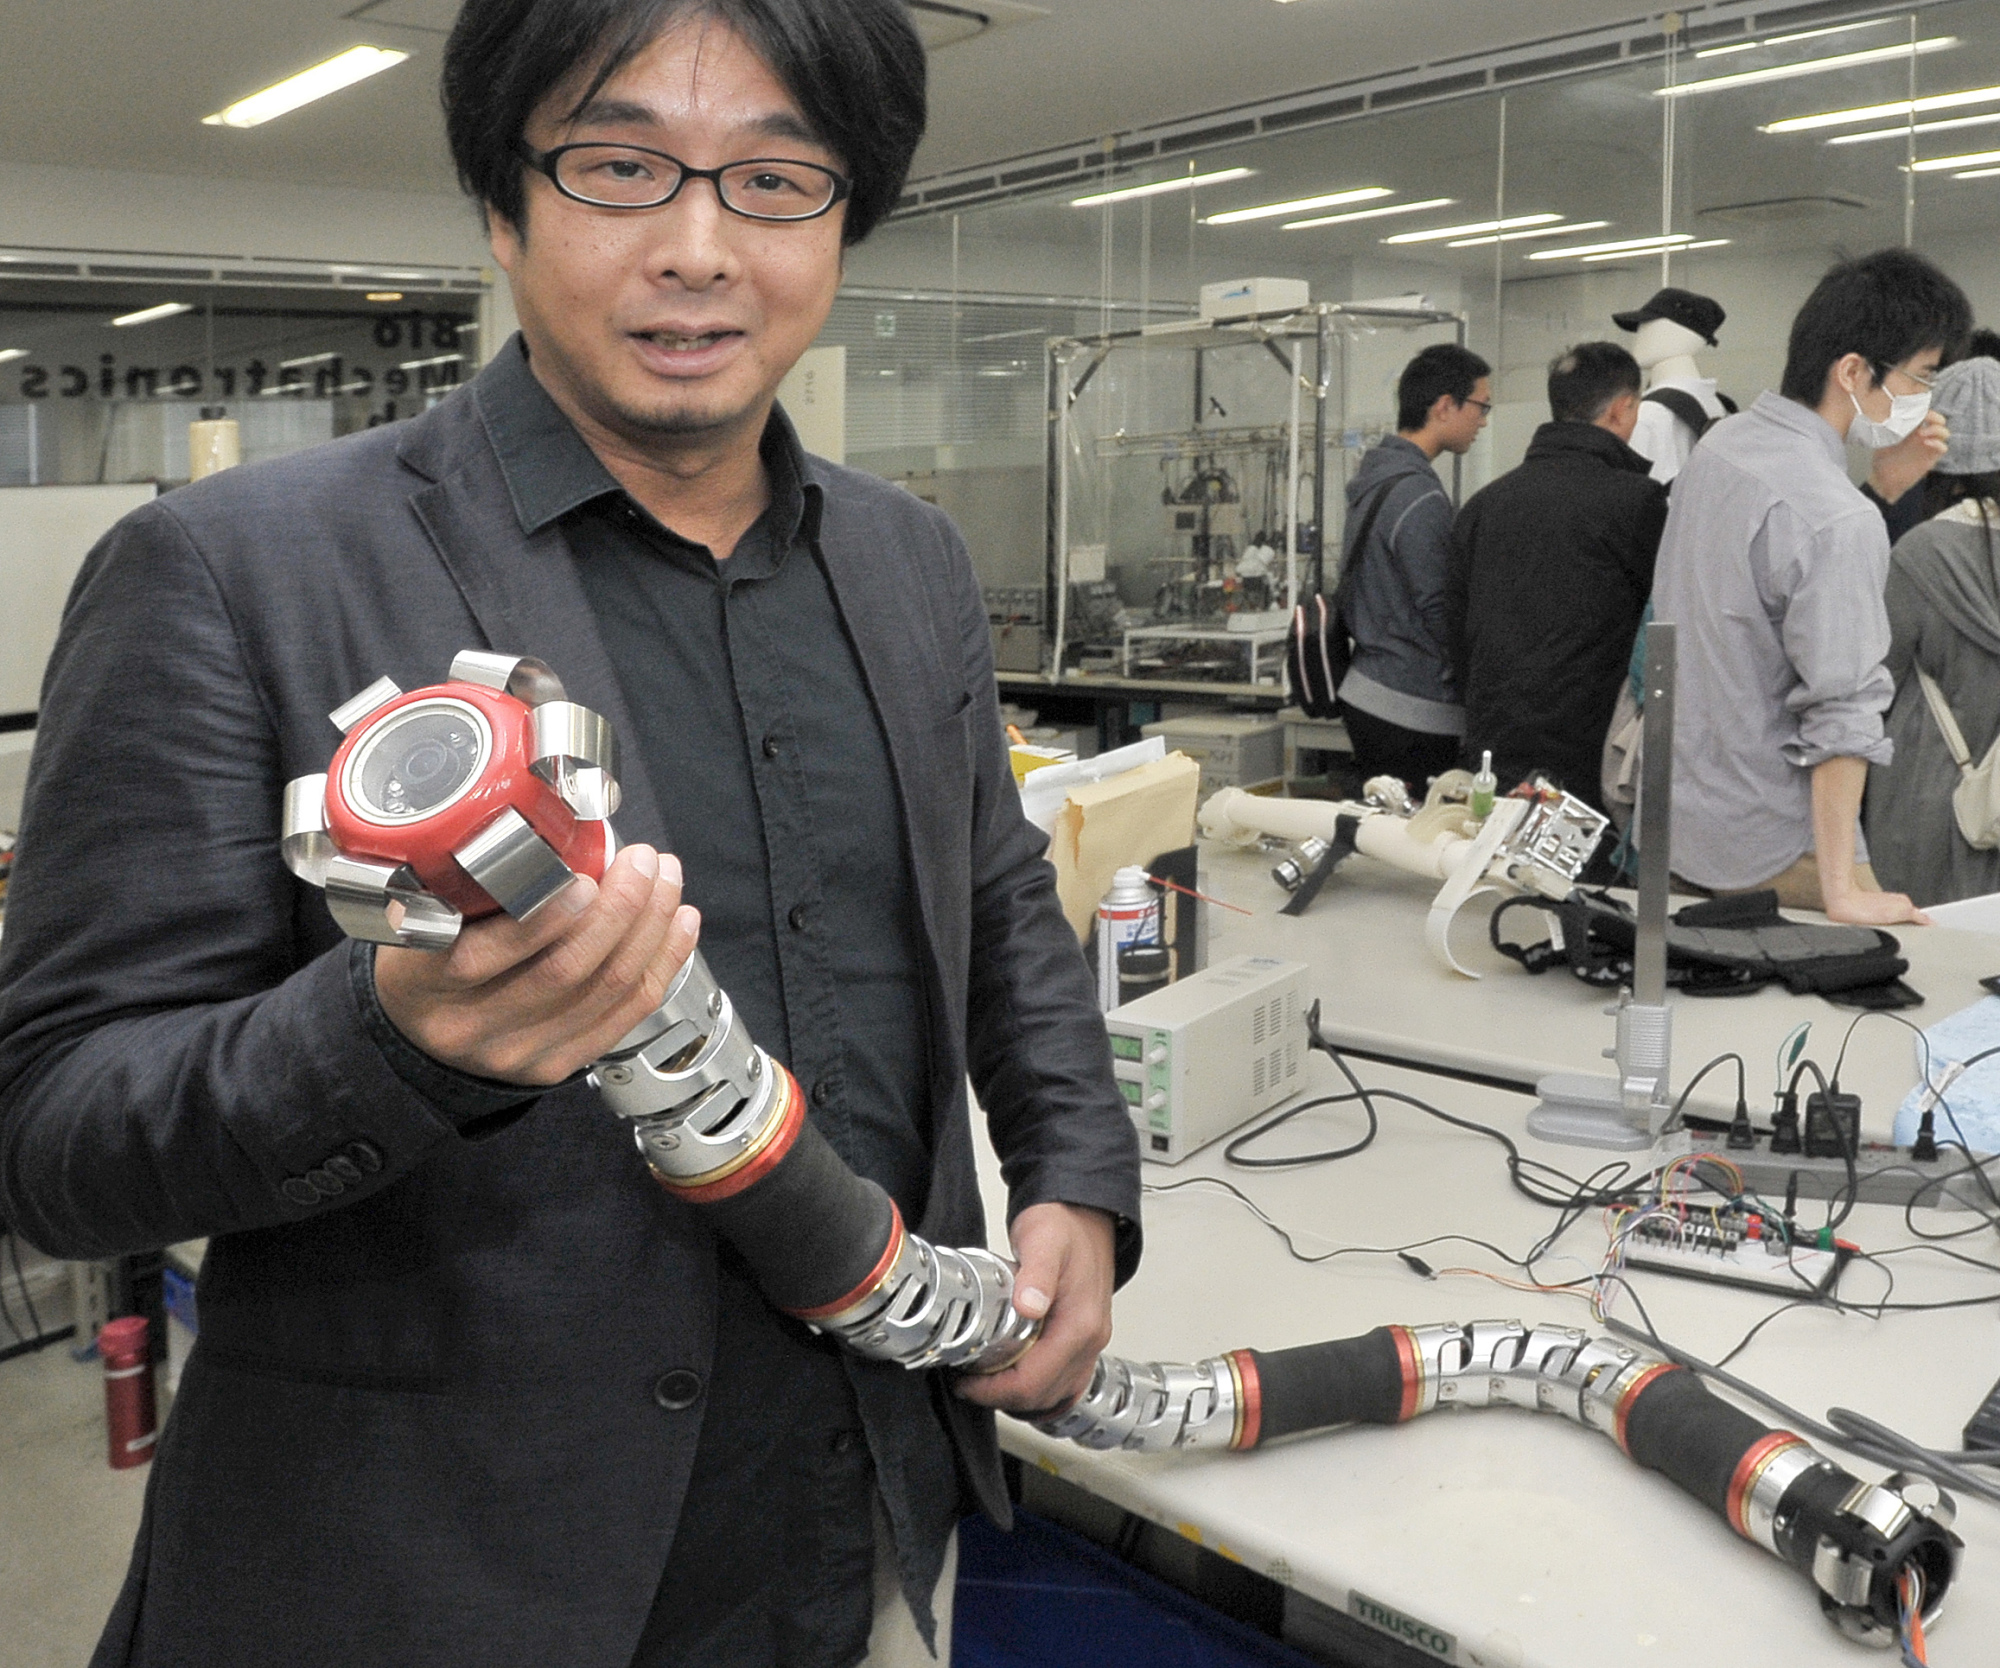 japanese engineer sees evolution guiding next wave in